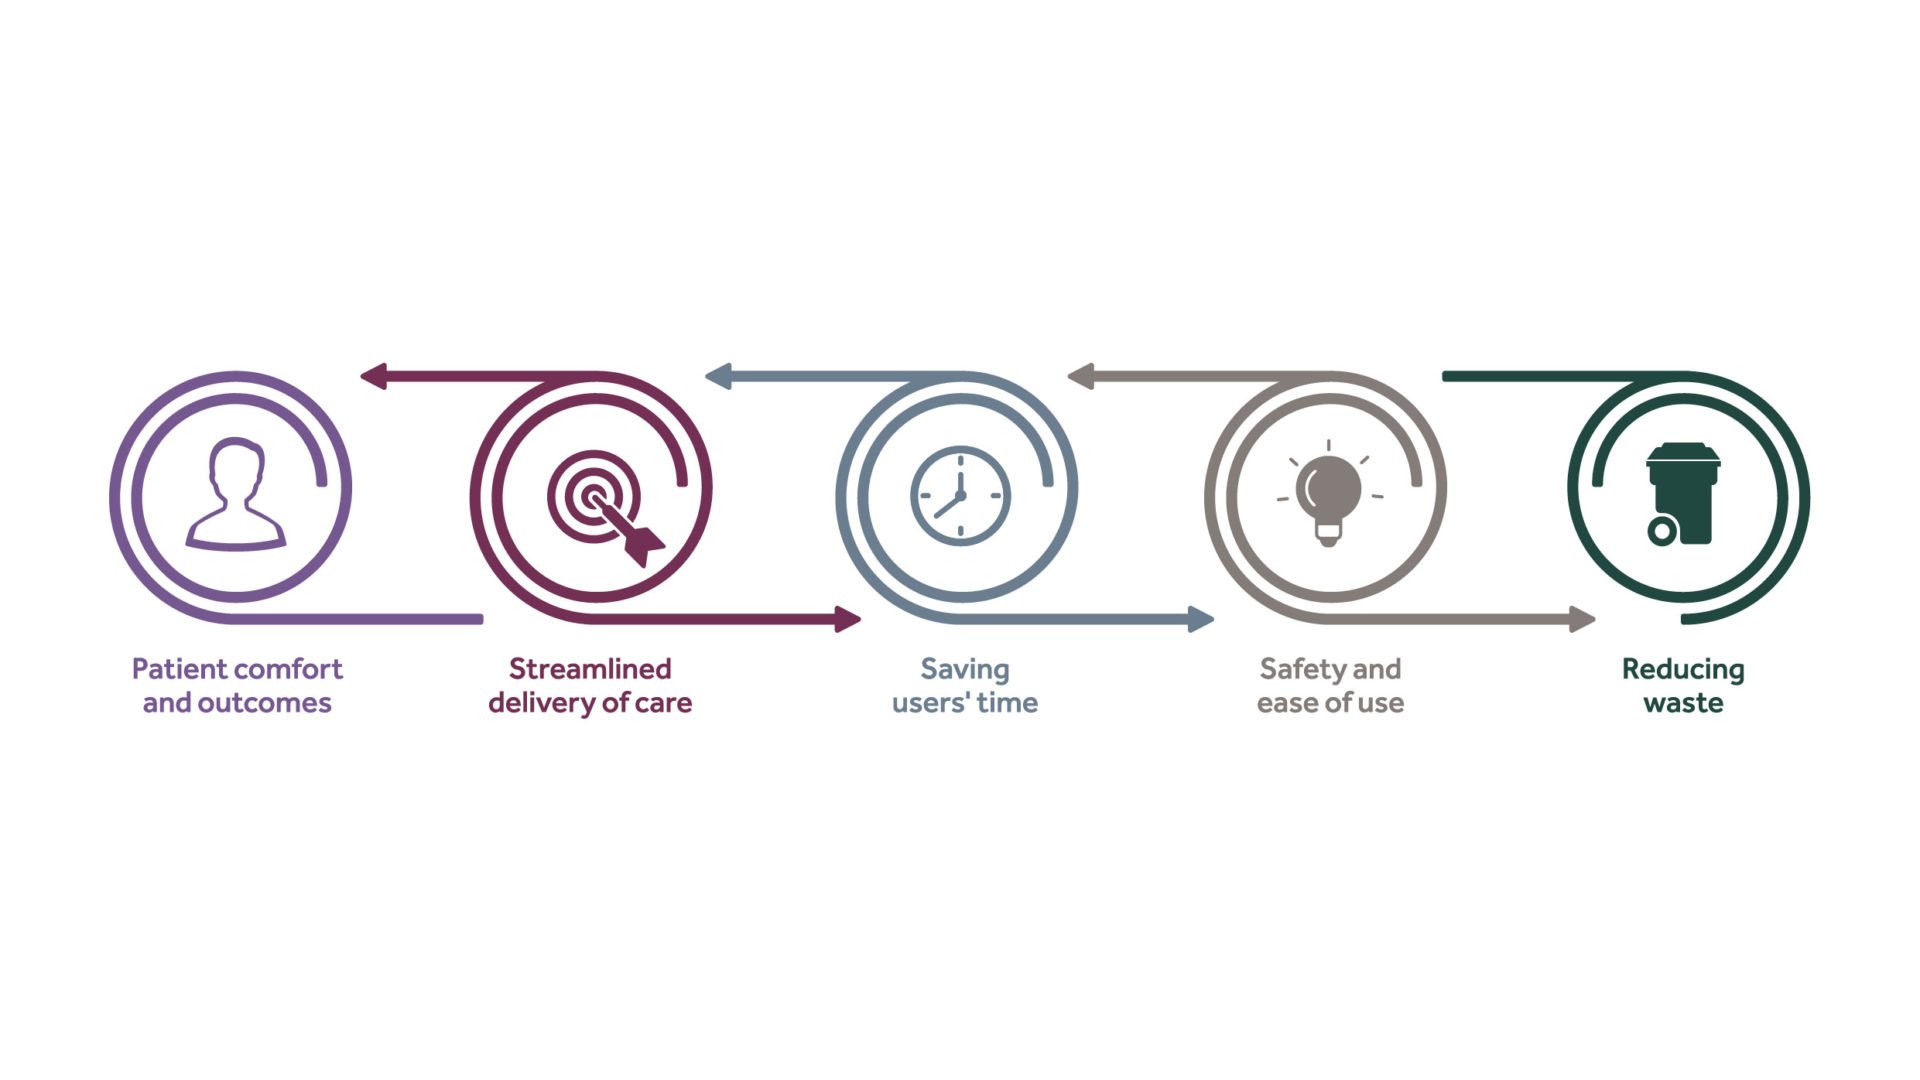 Armstrong Medical Values icons